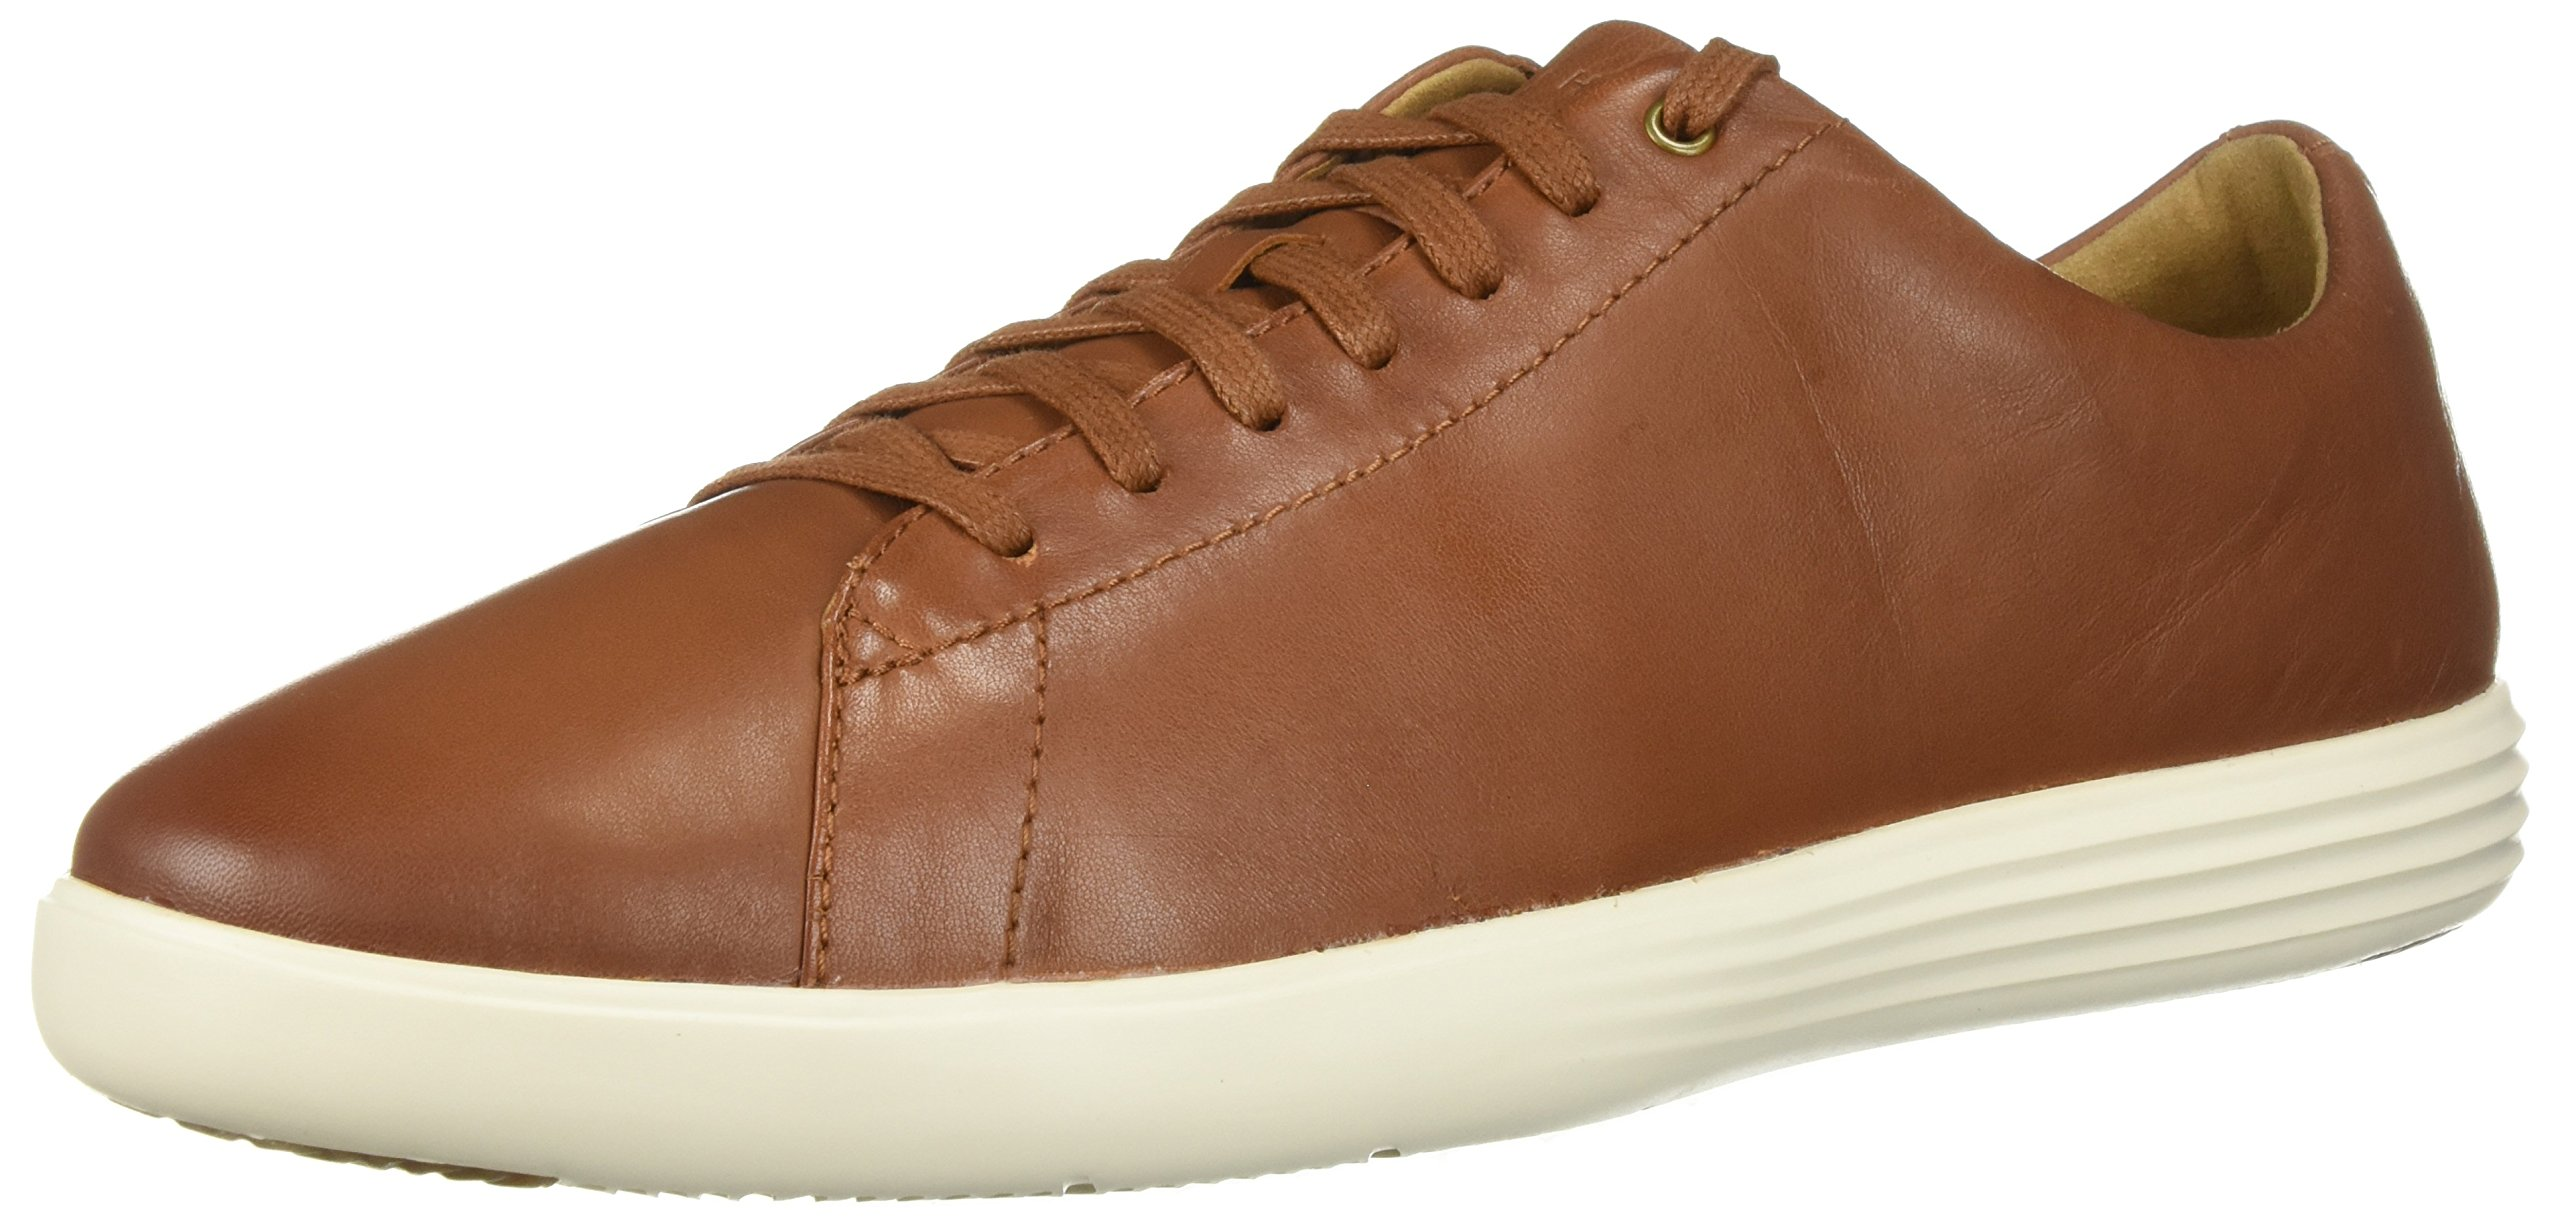 Cole Haan Men's Grand Crosscourt II Sneaker, TAN Leather BURNSH, US 11.5W